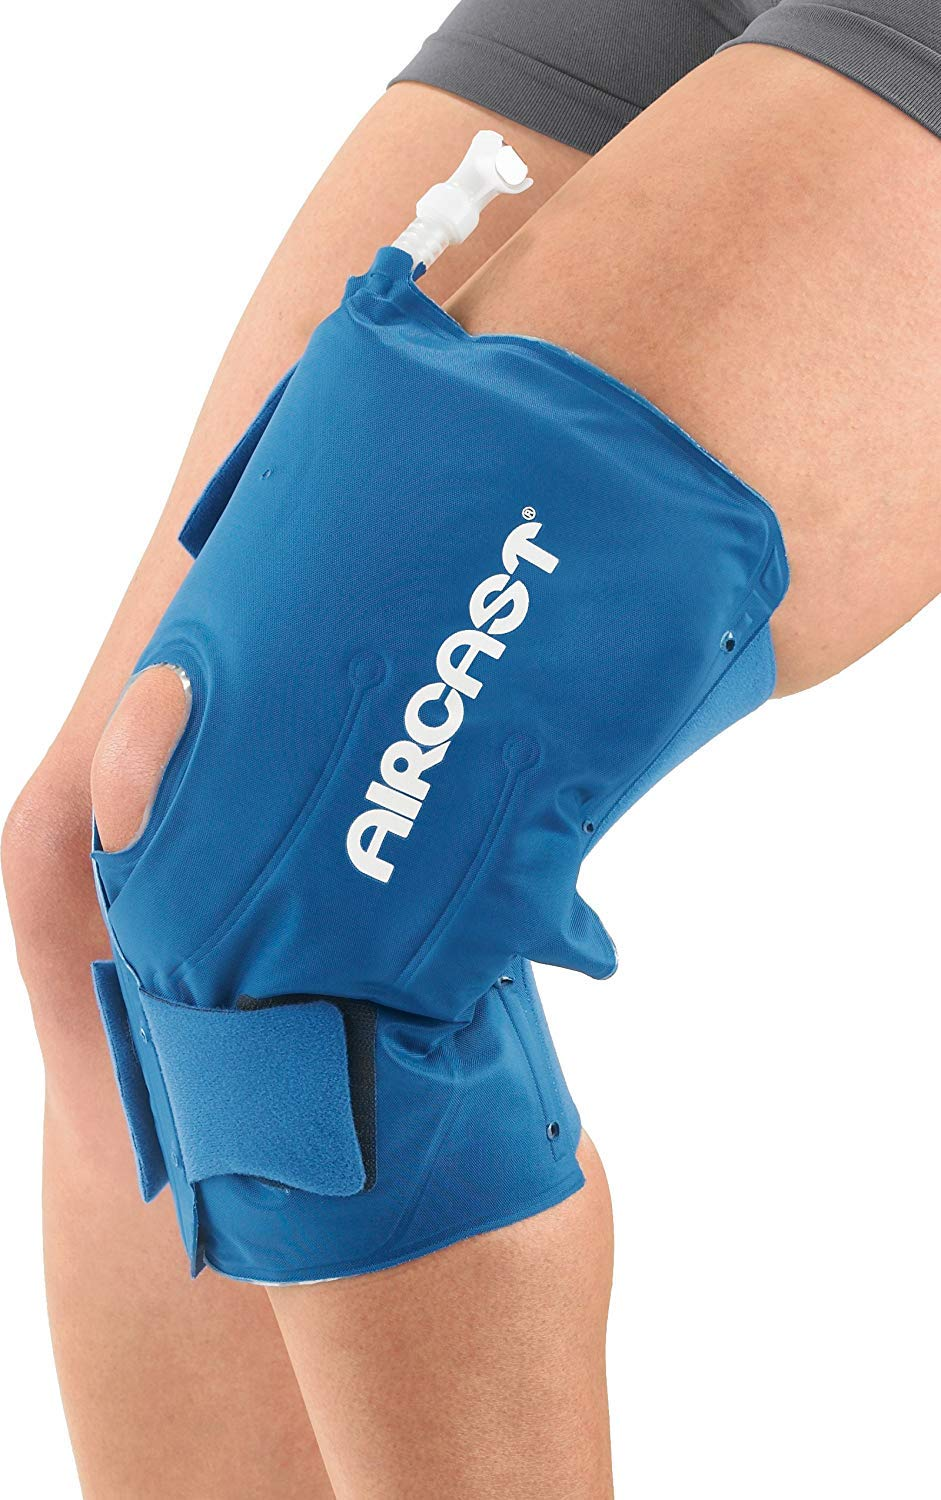 Image of Aircast Cryo/Cuff Systems, Individual Cuffs, Knee